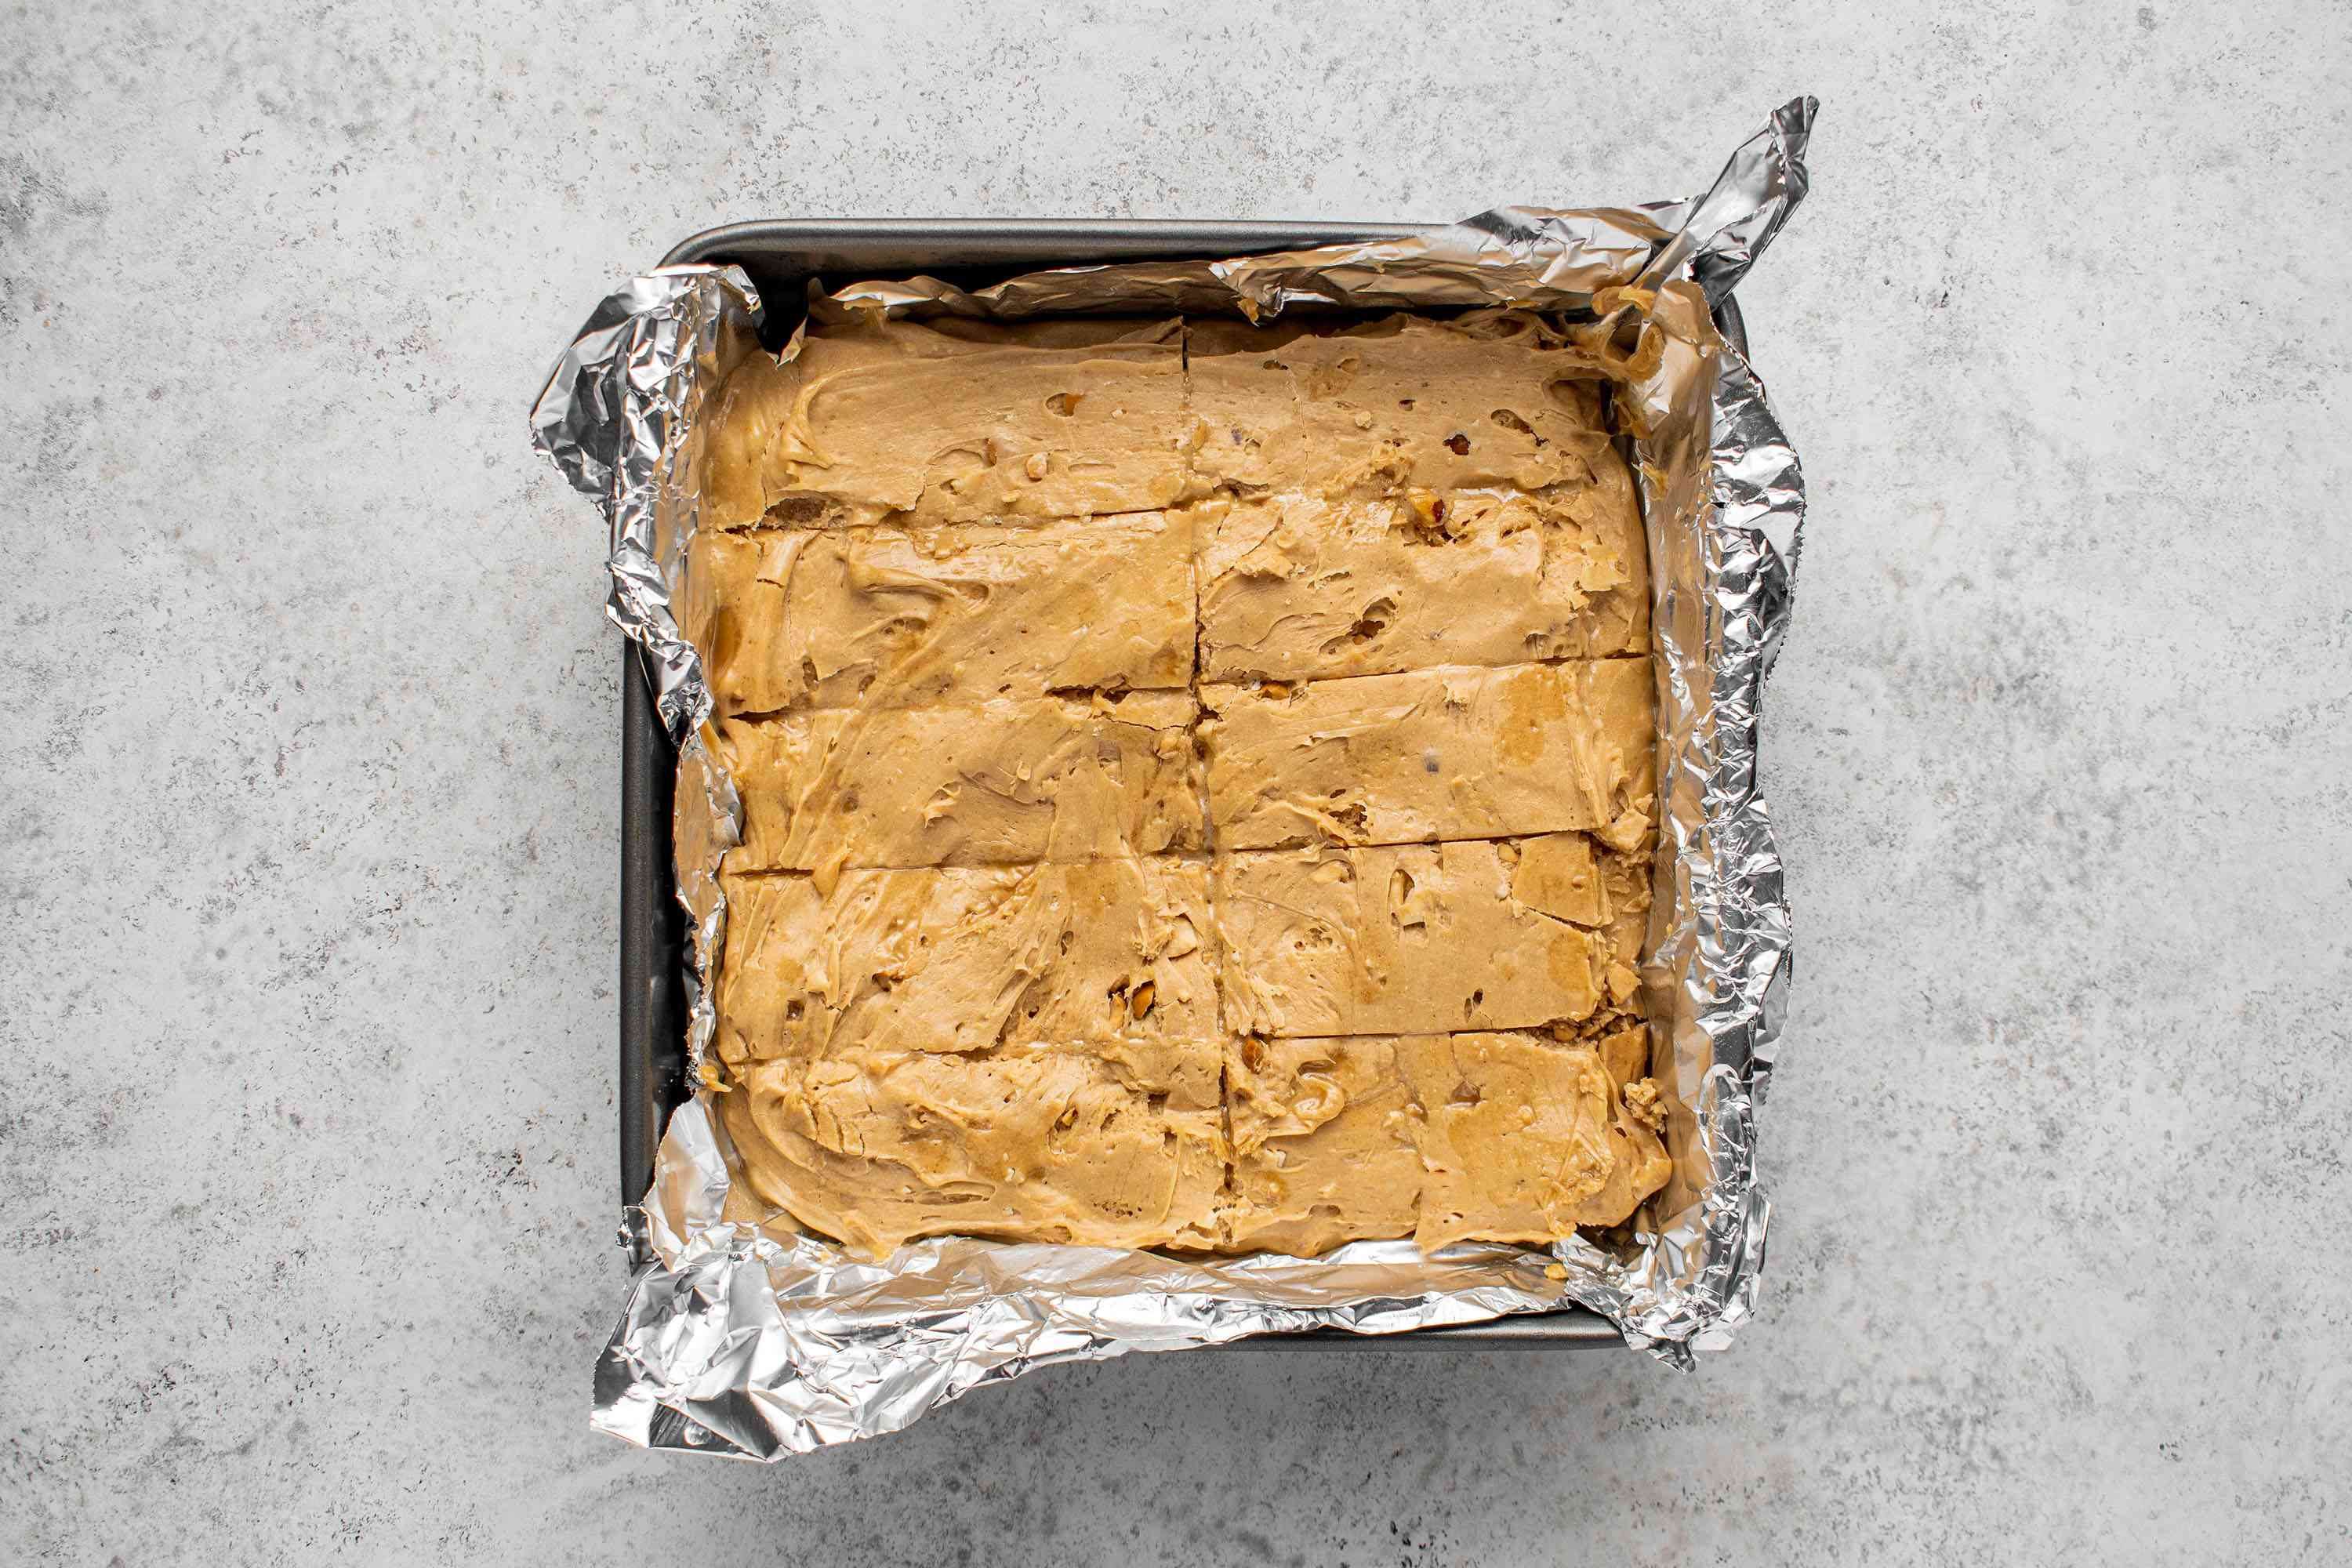 peanut butter mixture cut into pieces in a prepared baking pan